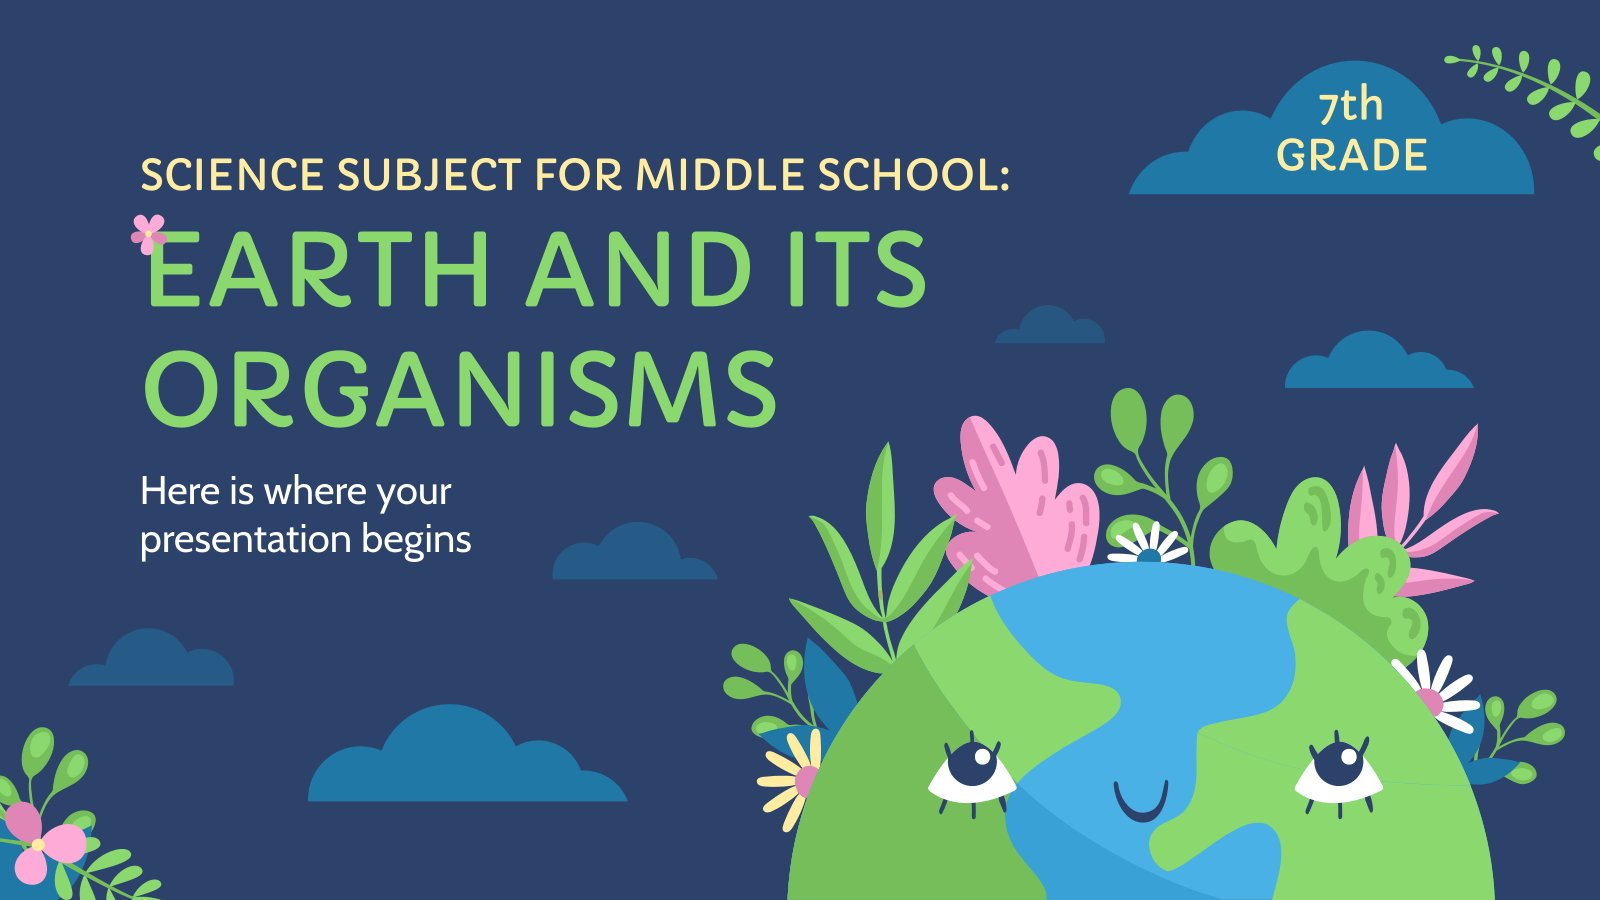 Science Subject for Middle School - 7th Grade: Earth and Its Organisms presentation template